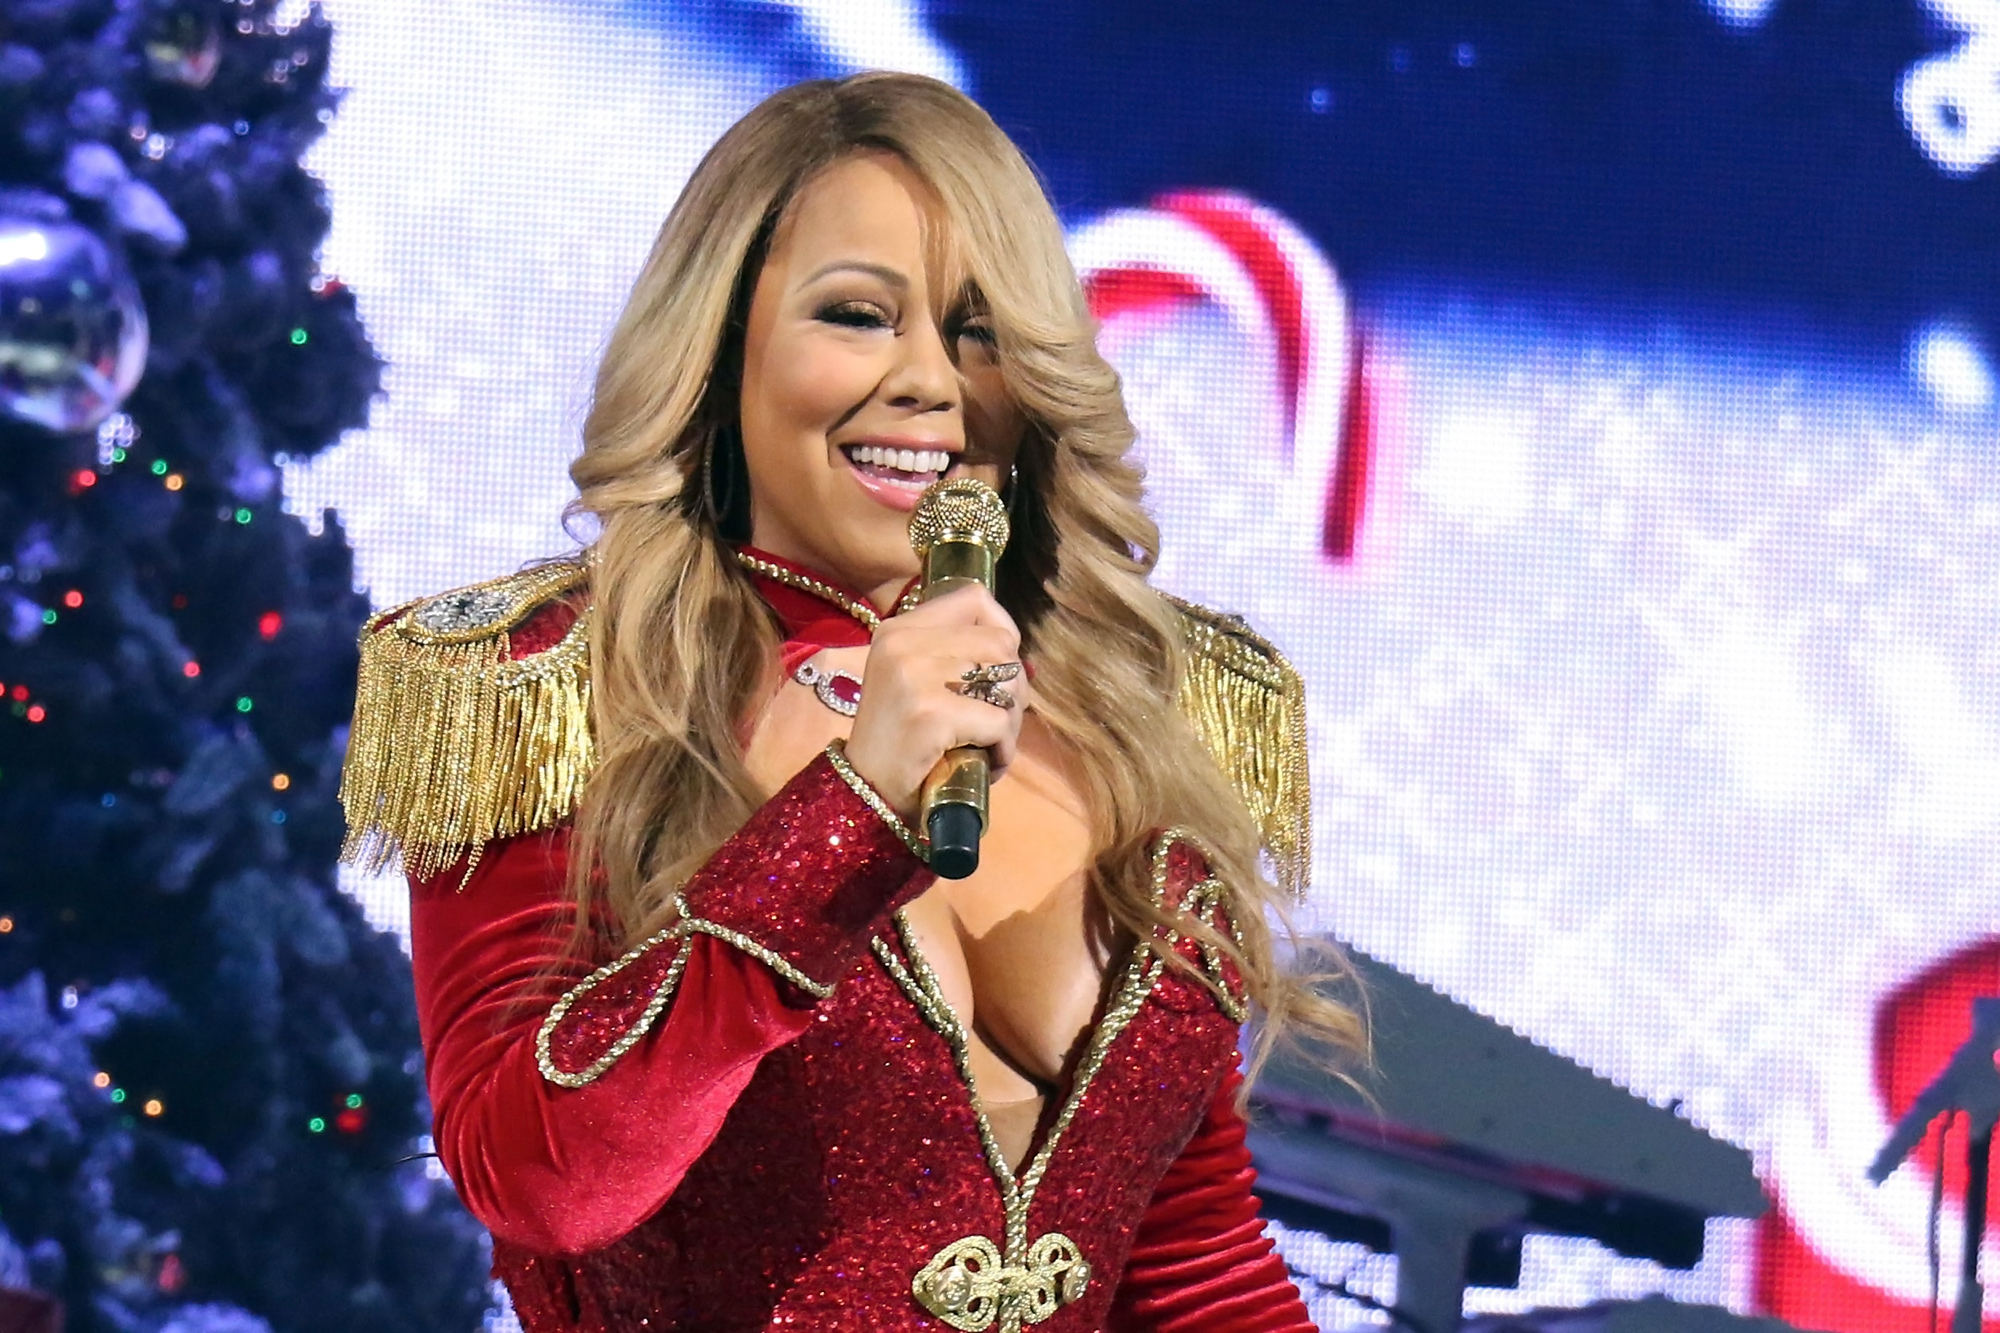 Mariah Carey Announces All I Want For Christmas Is You Tour Rolling Stone